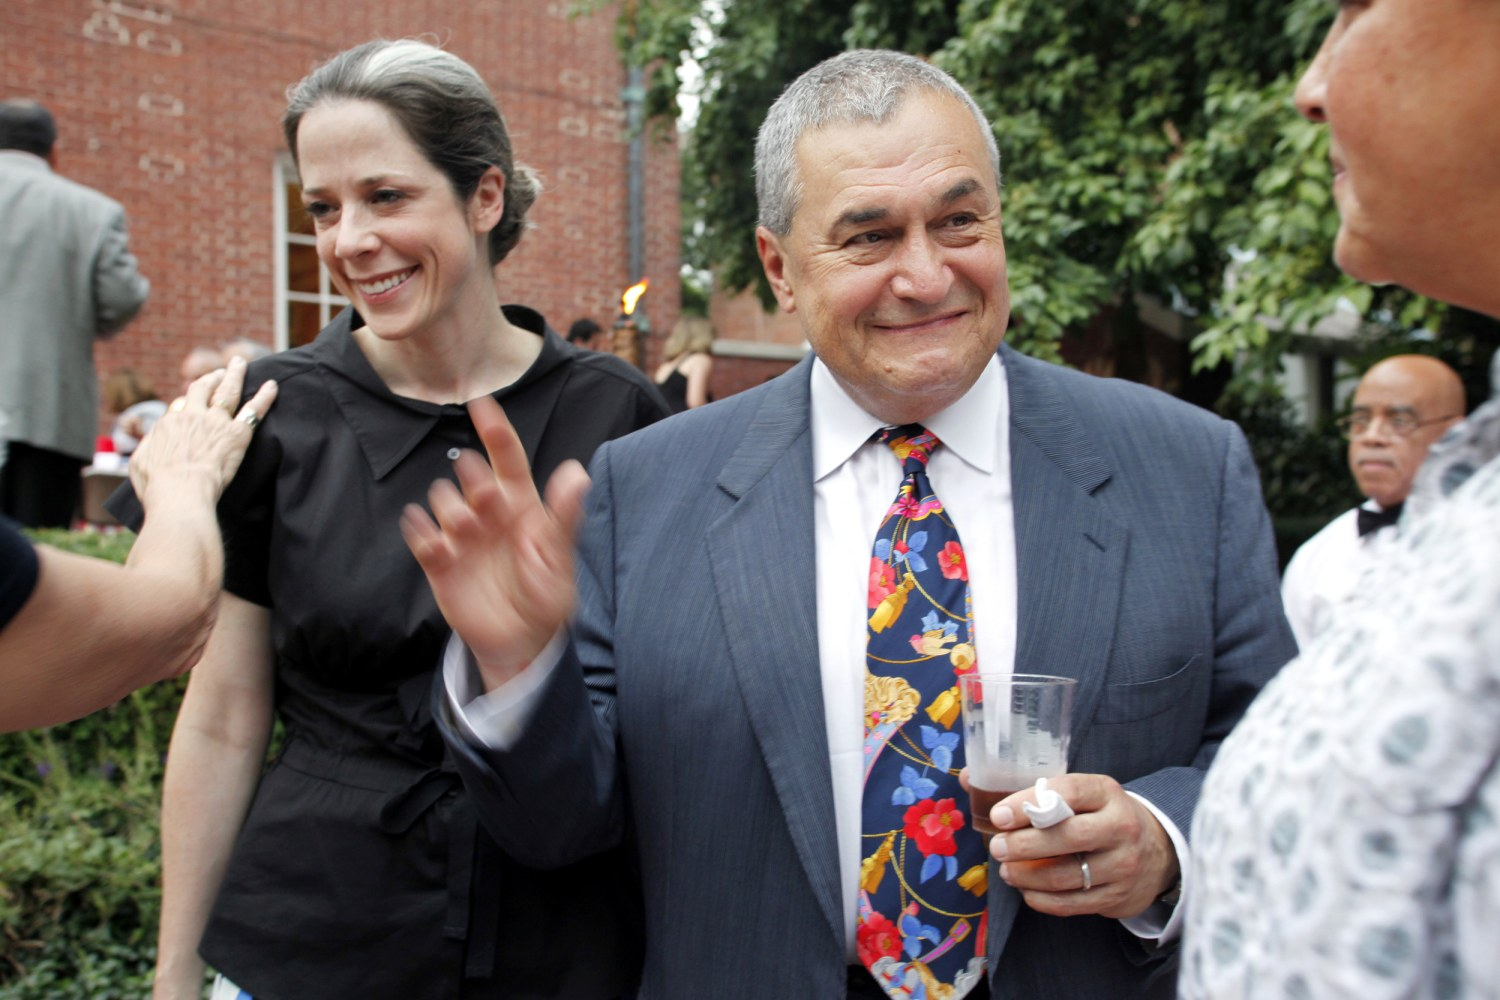 Podesta Group, Mercury Are Companies 'A' and 'B' in Indictment